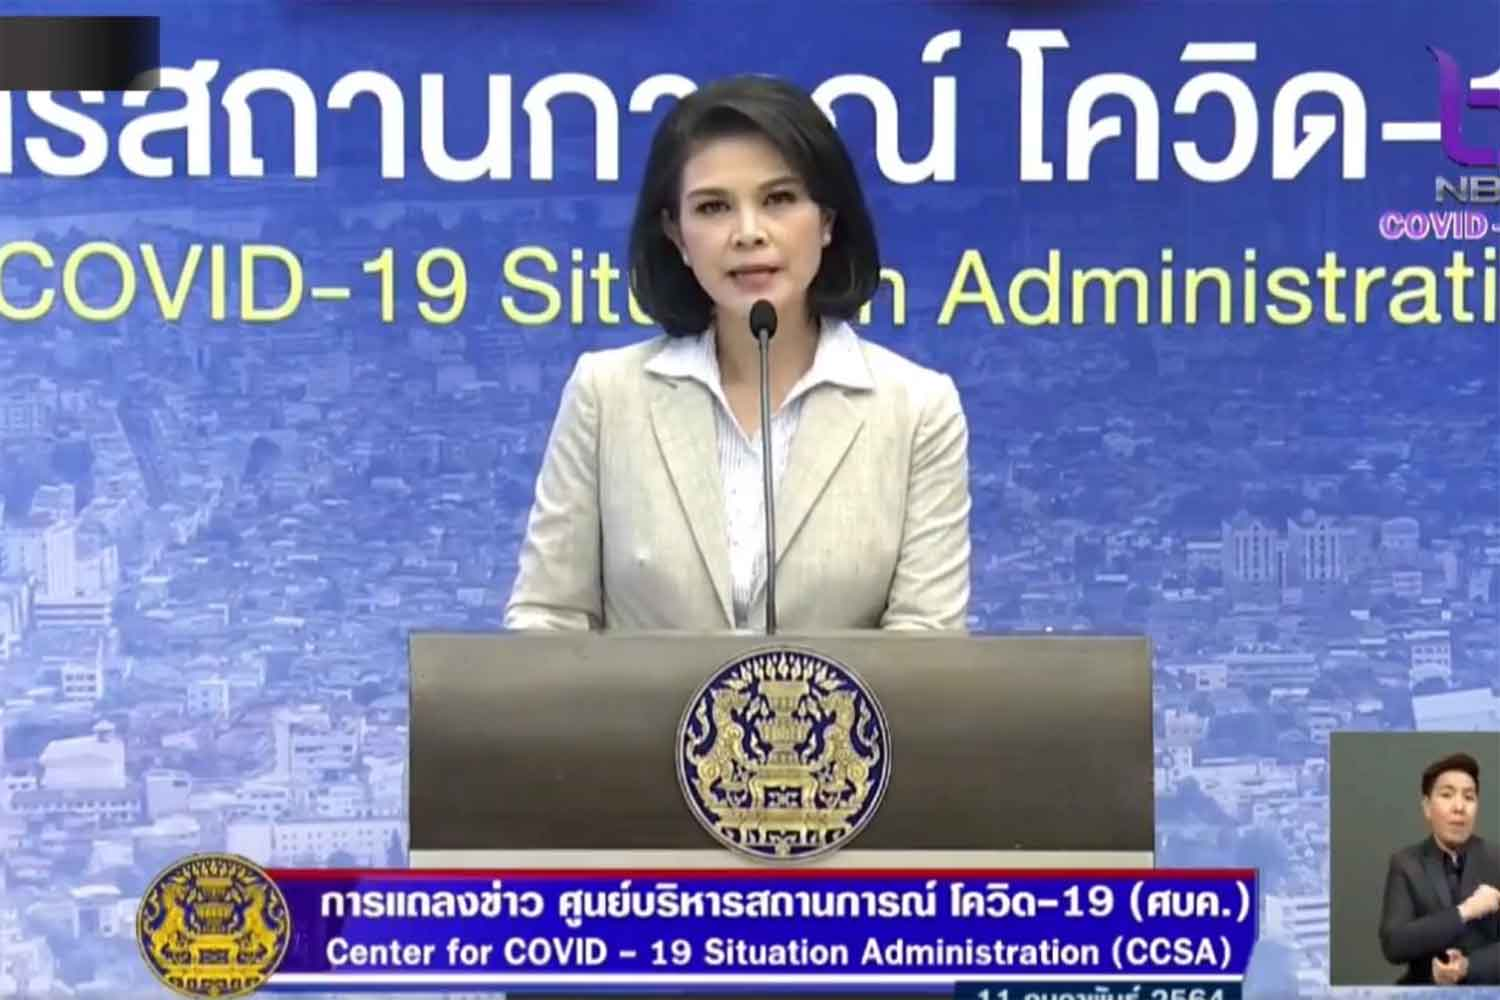 Dr Apisamai Srirangson, assistant spokeswoman for the Centre for Covid-19 Situation Administration, is in a press conference at Government House on Thursday. (Screenshot)